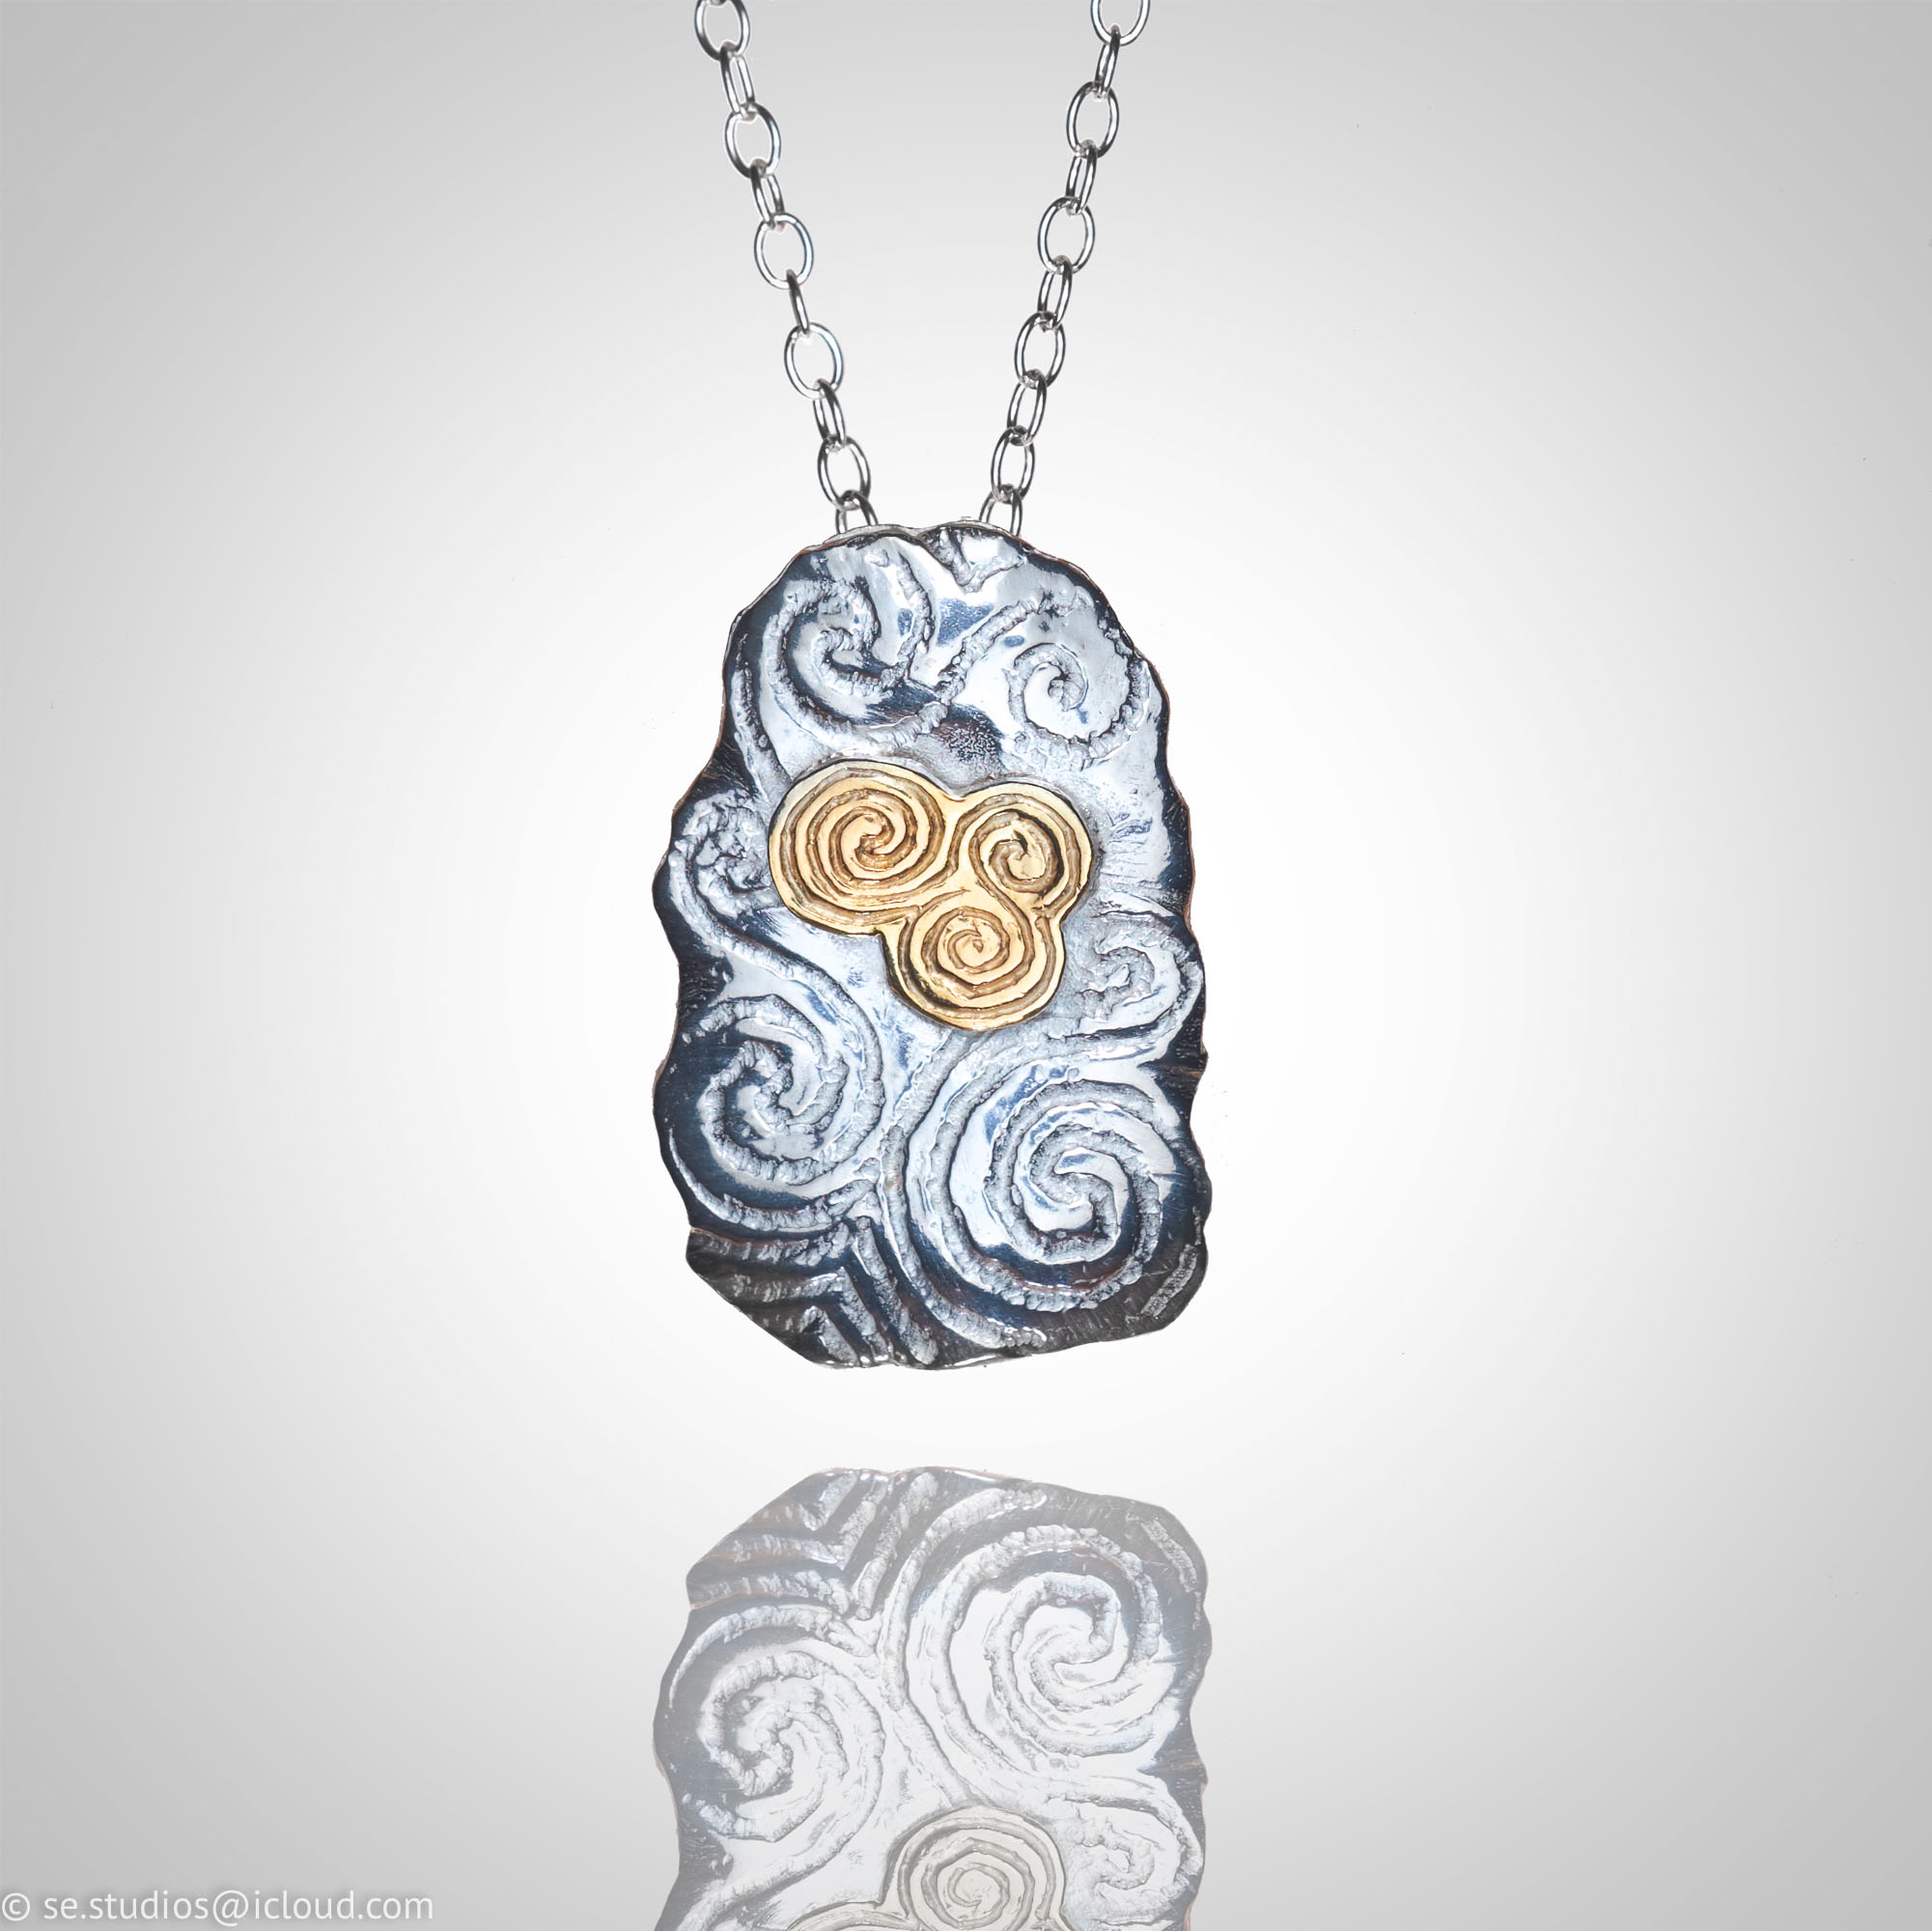 Newgrange Inspired Silver with 9ct Gold Pendant